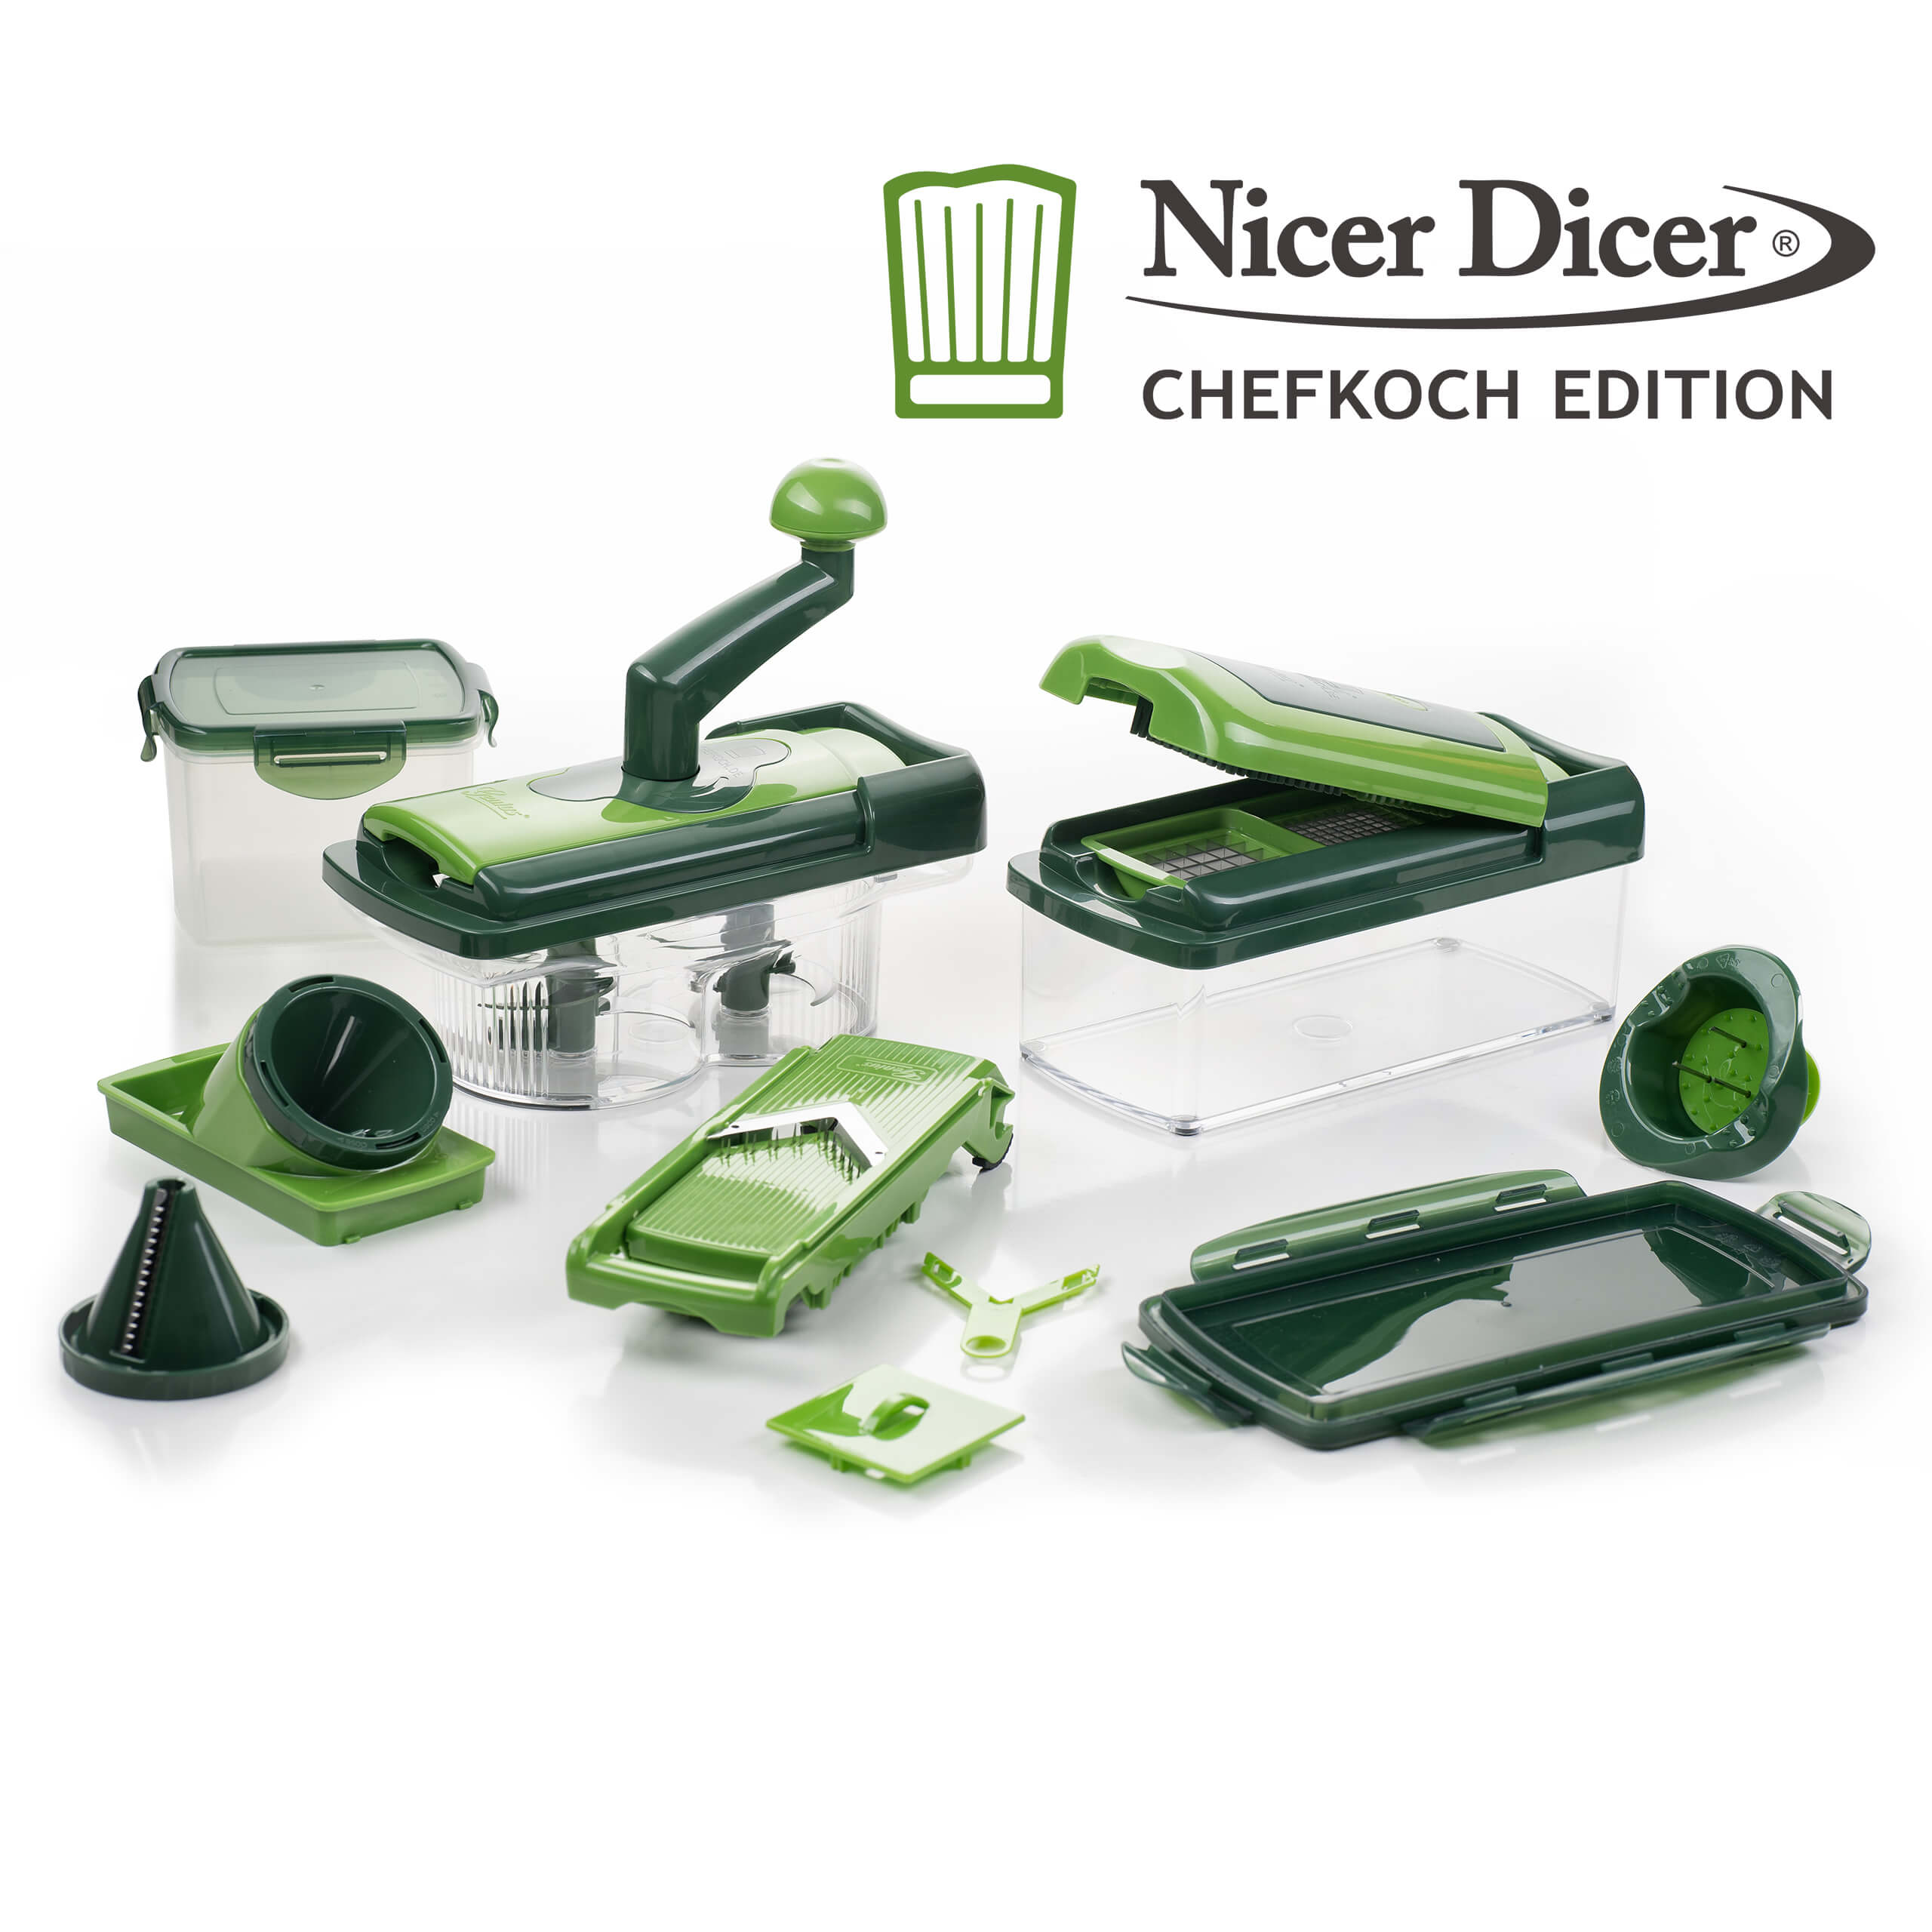 nicer dicer chefkoch edition set 20tlg inkl rezeptheft nicer dicer fusion nicer dicer. Black Bedroom Furniture Sets. Home Design Ideas